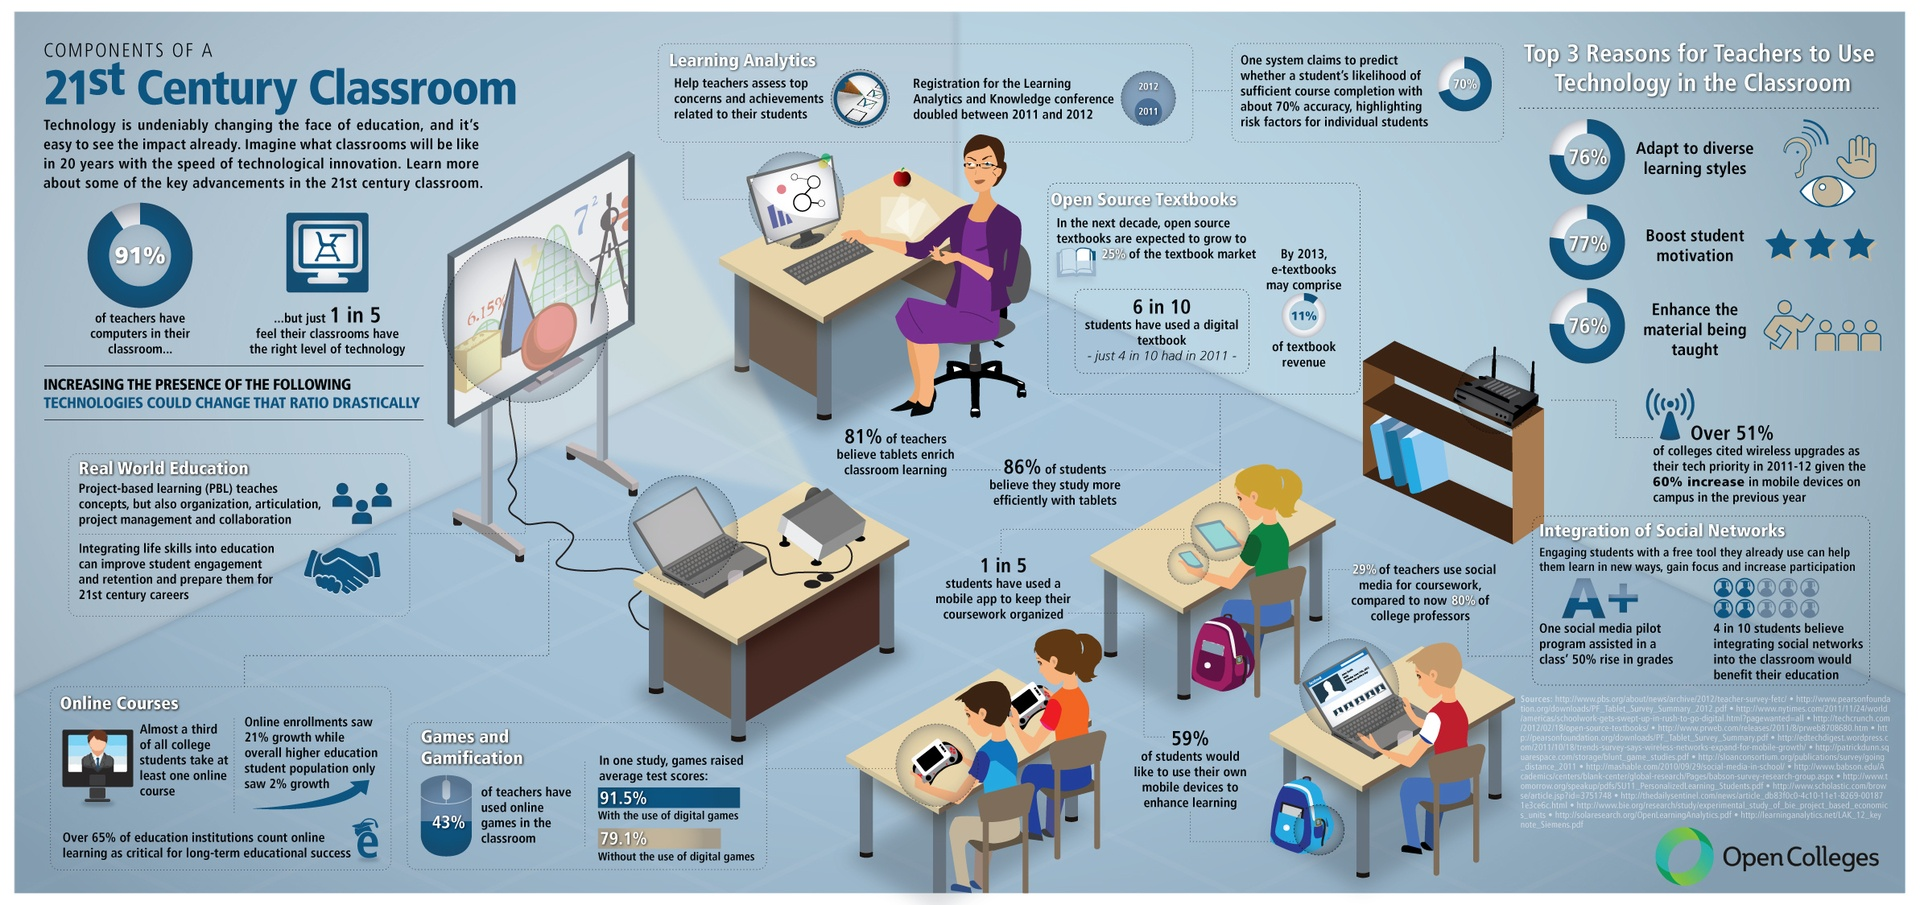 North South University 21st Century Educational Technology Classroom Infographic